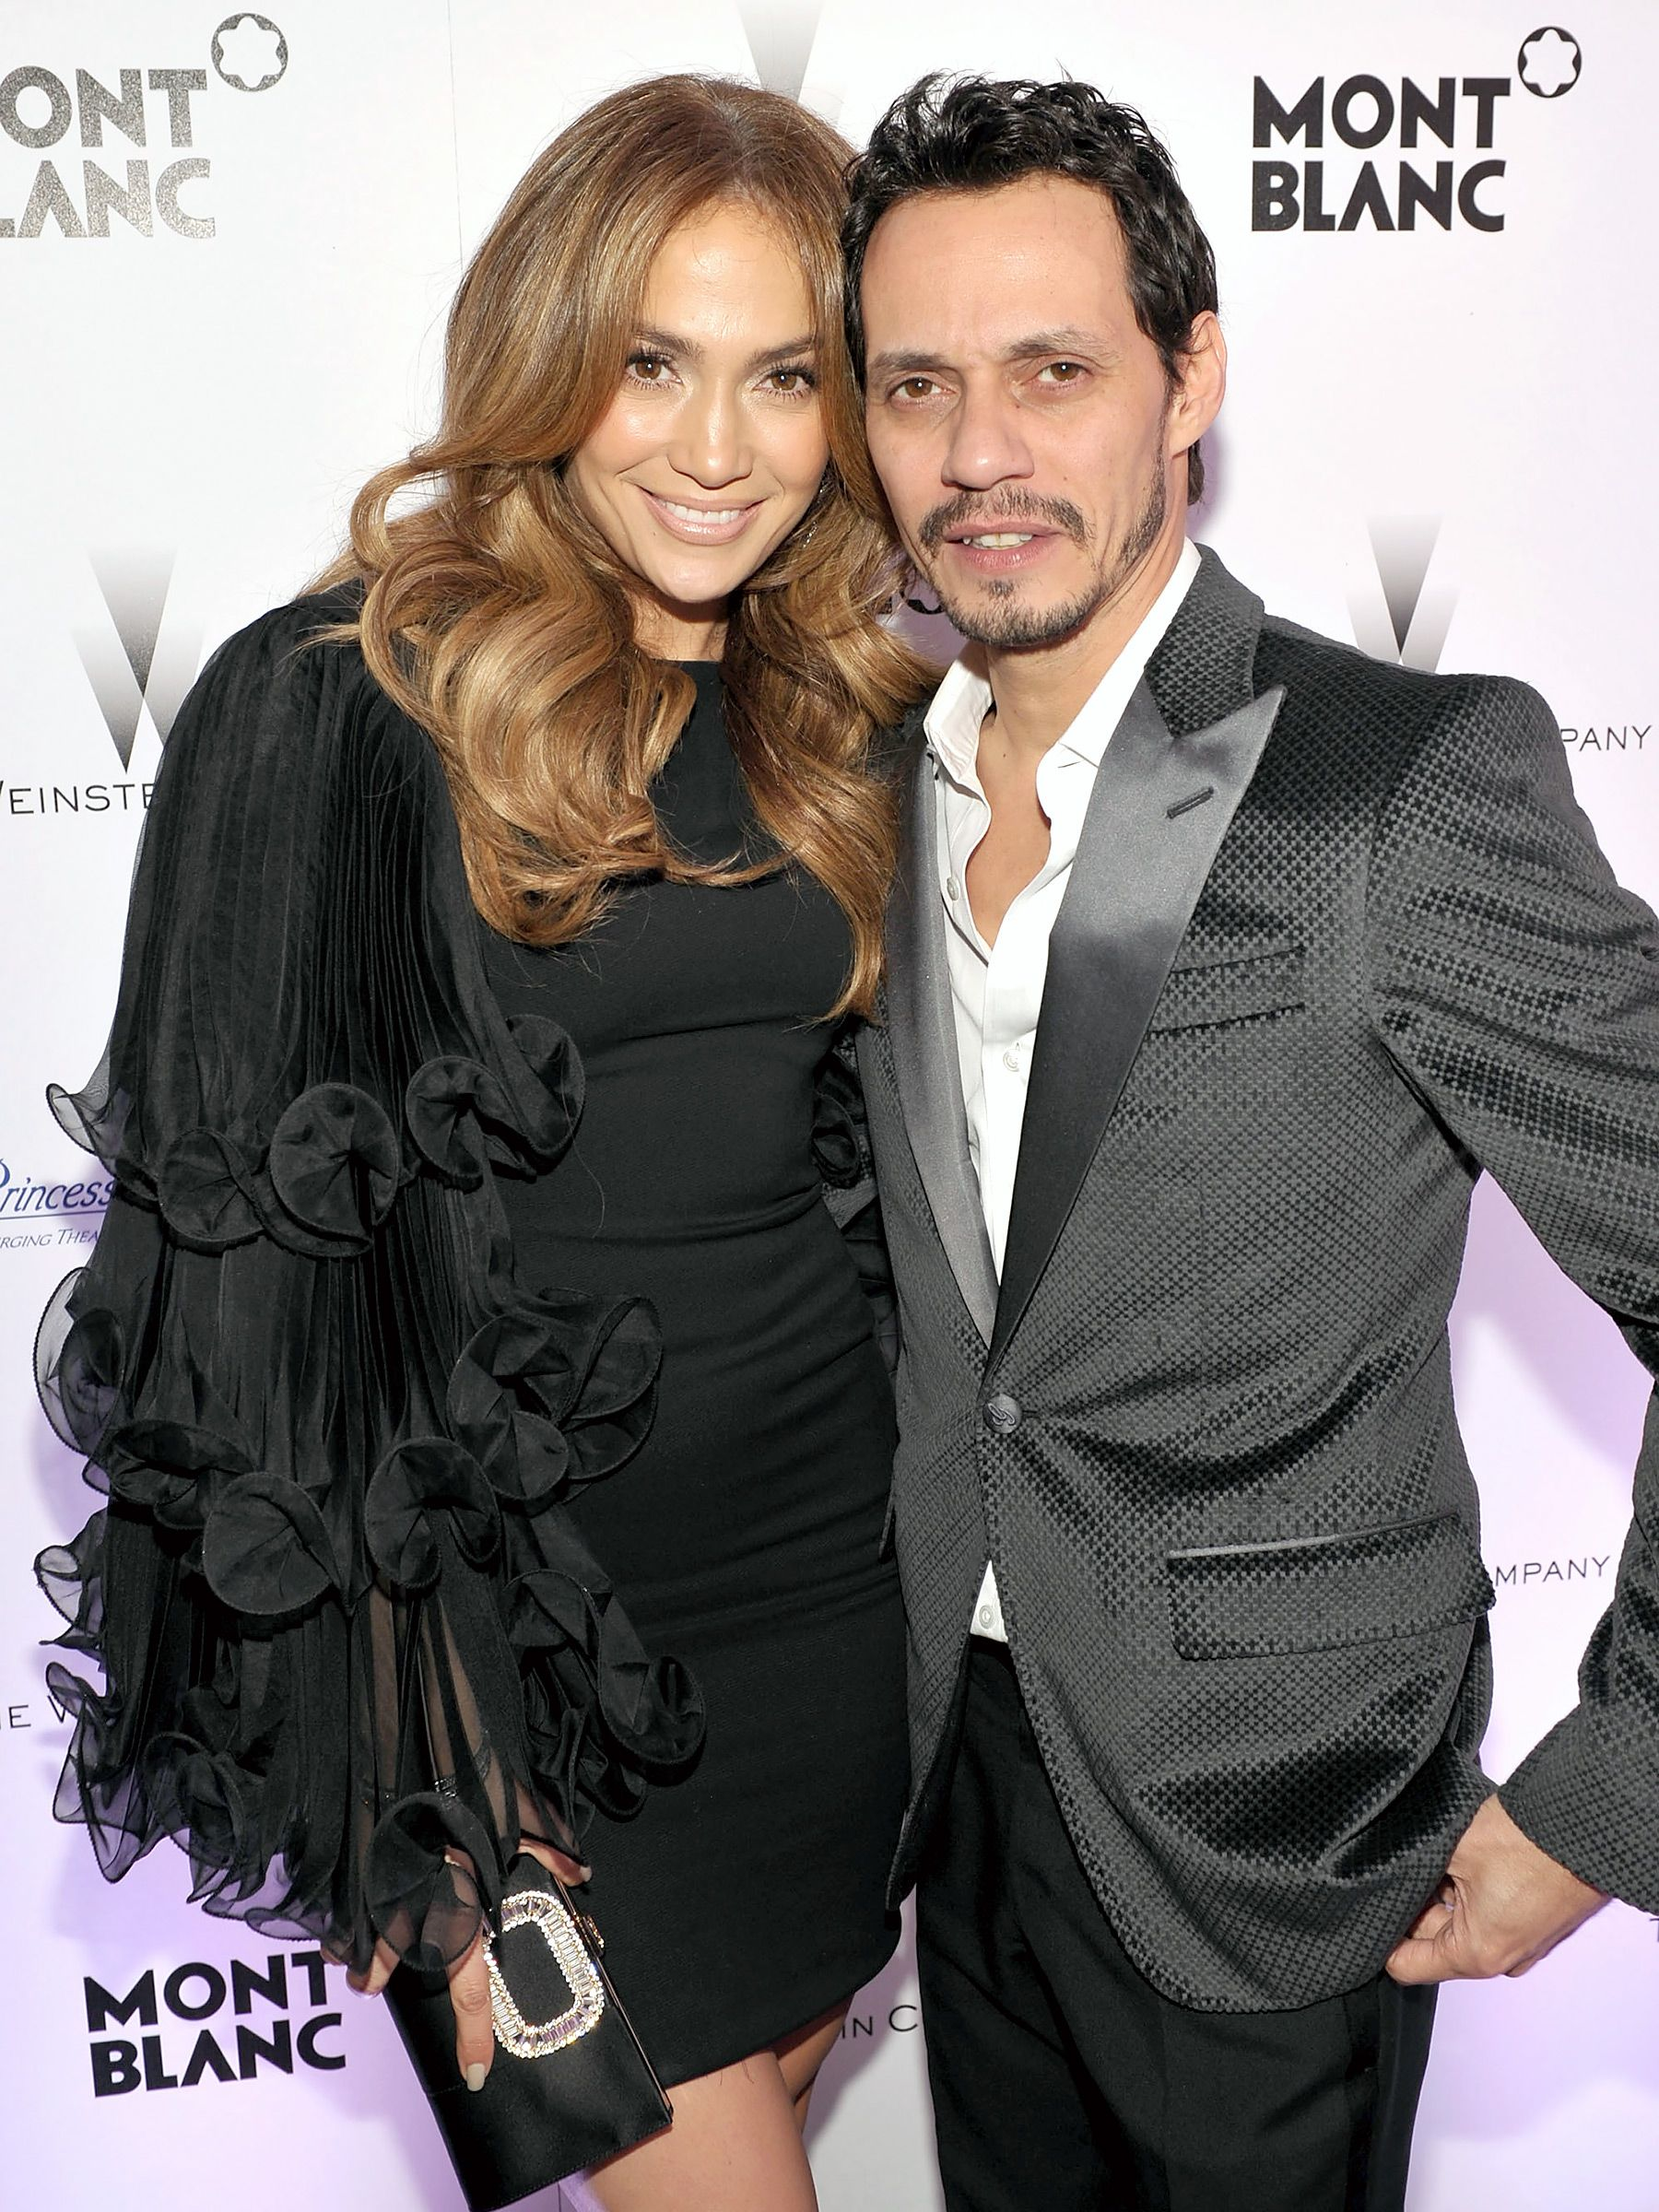 J.Lo Files Docs in Marc Anthony Divorce Two Years After Split: Report